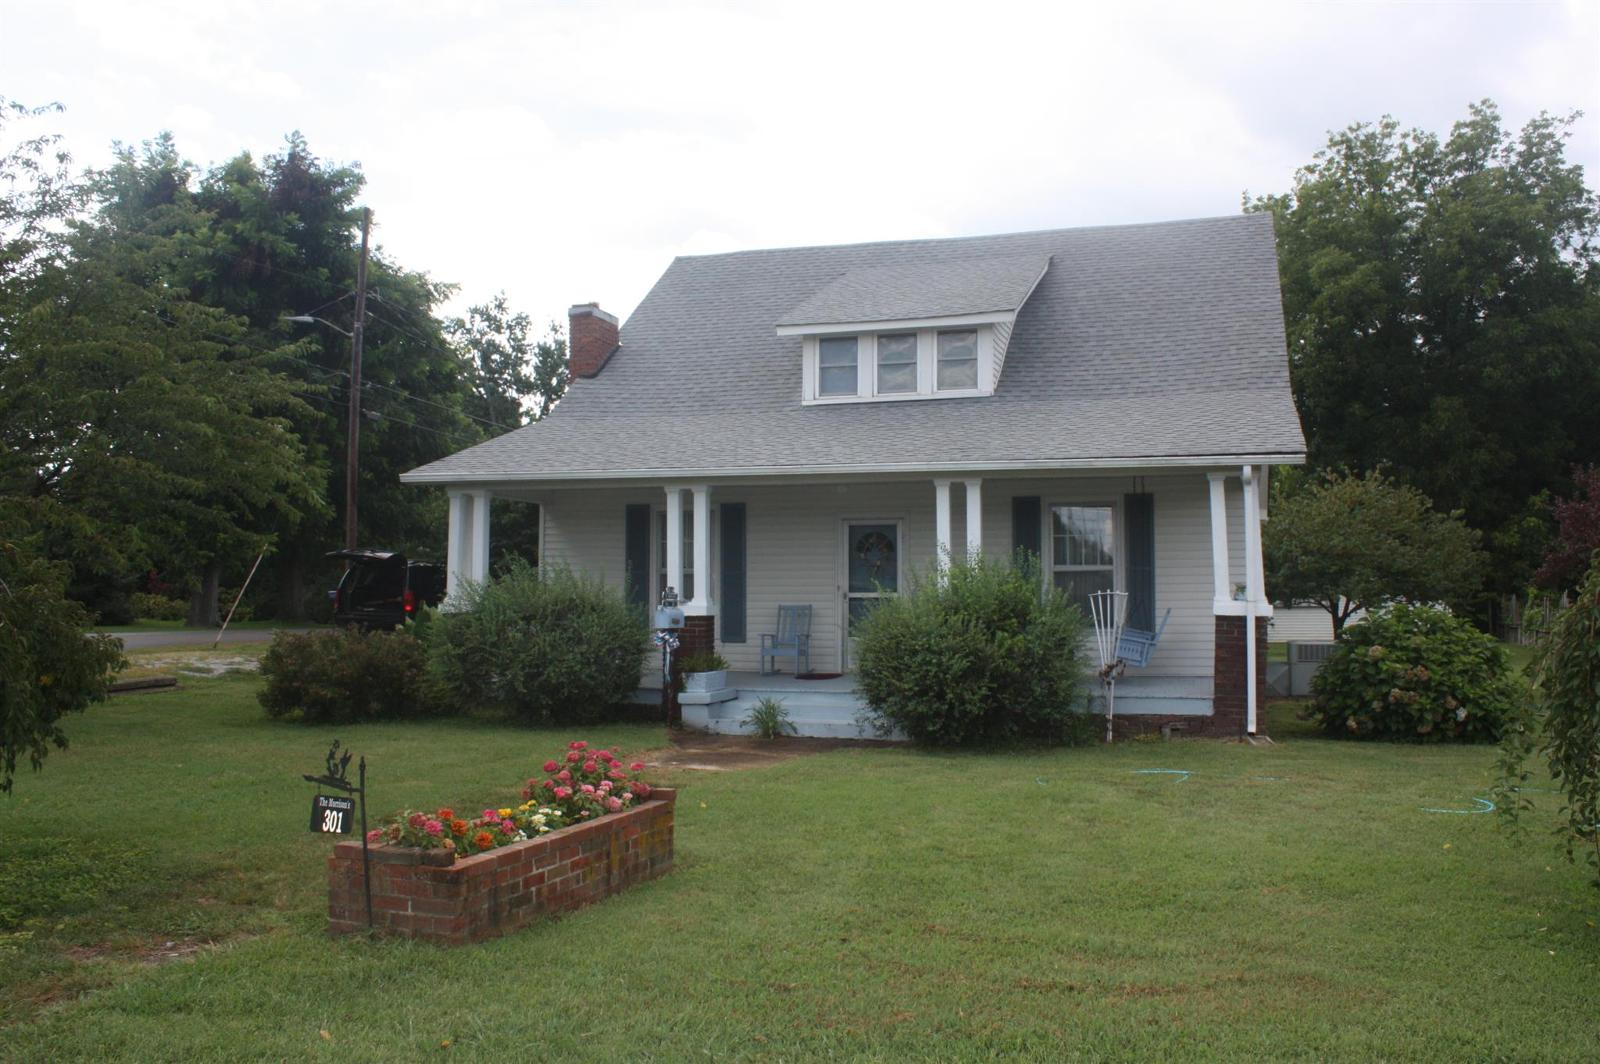 301 W Sparta St, Mcminnville, Tn — Mls# 1751841 — Era Pertaining To Warren Co. Tn.west Scool Year